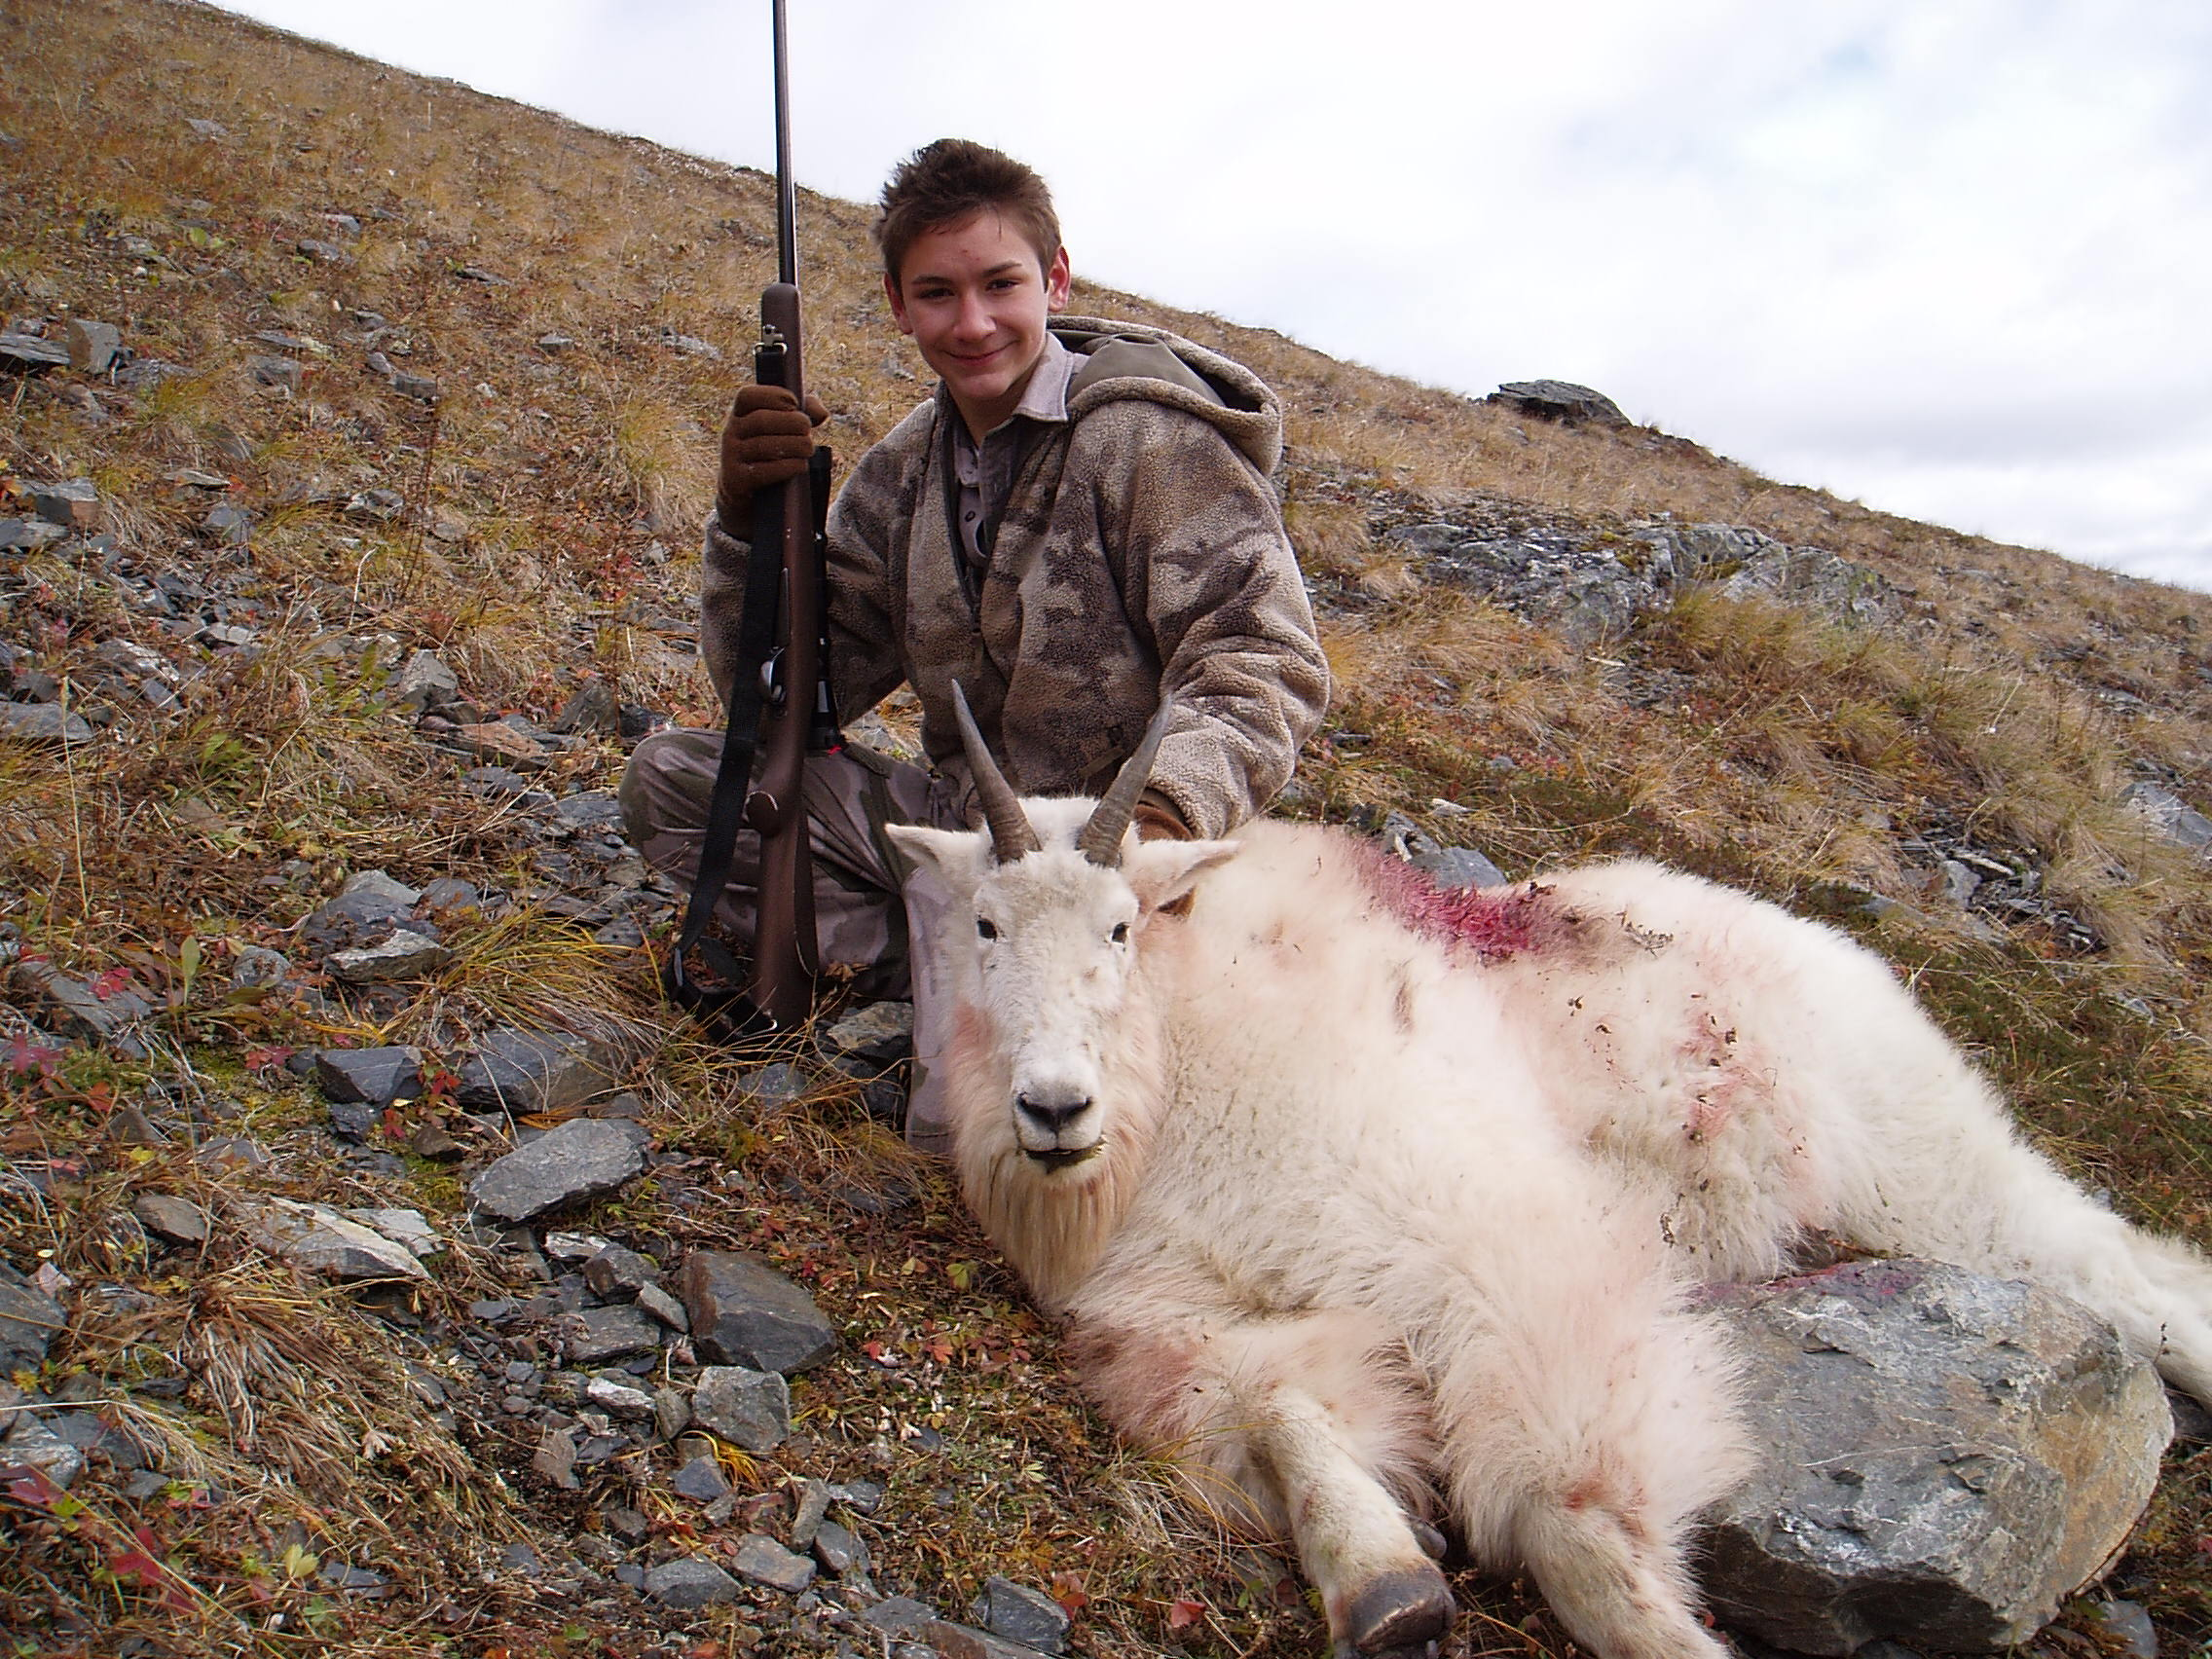 Nathan with his goat. A proud hunter.